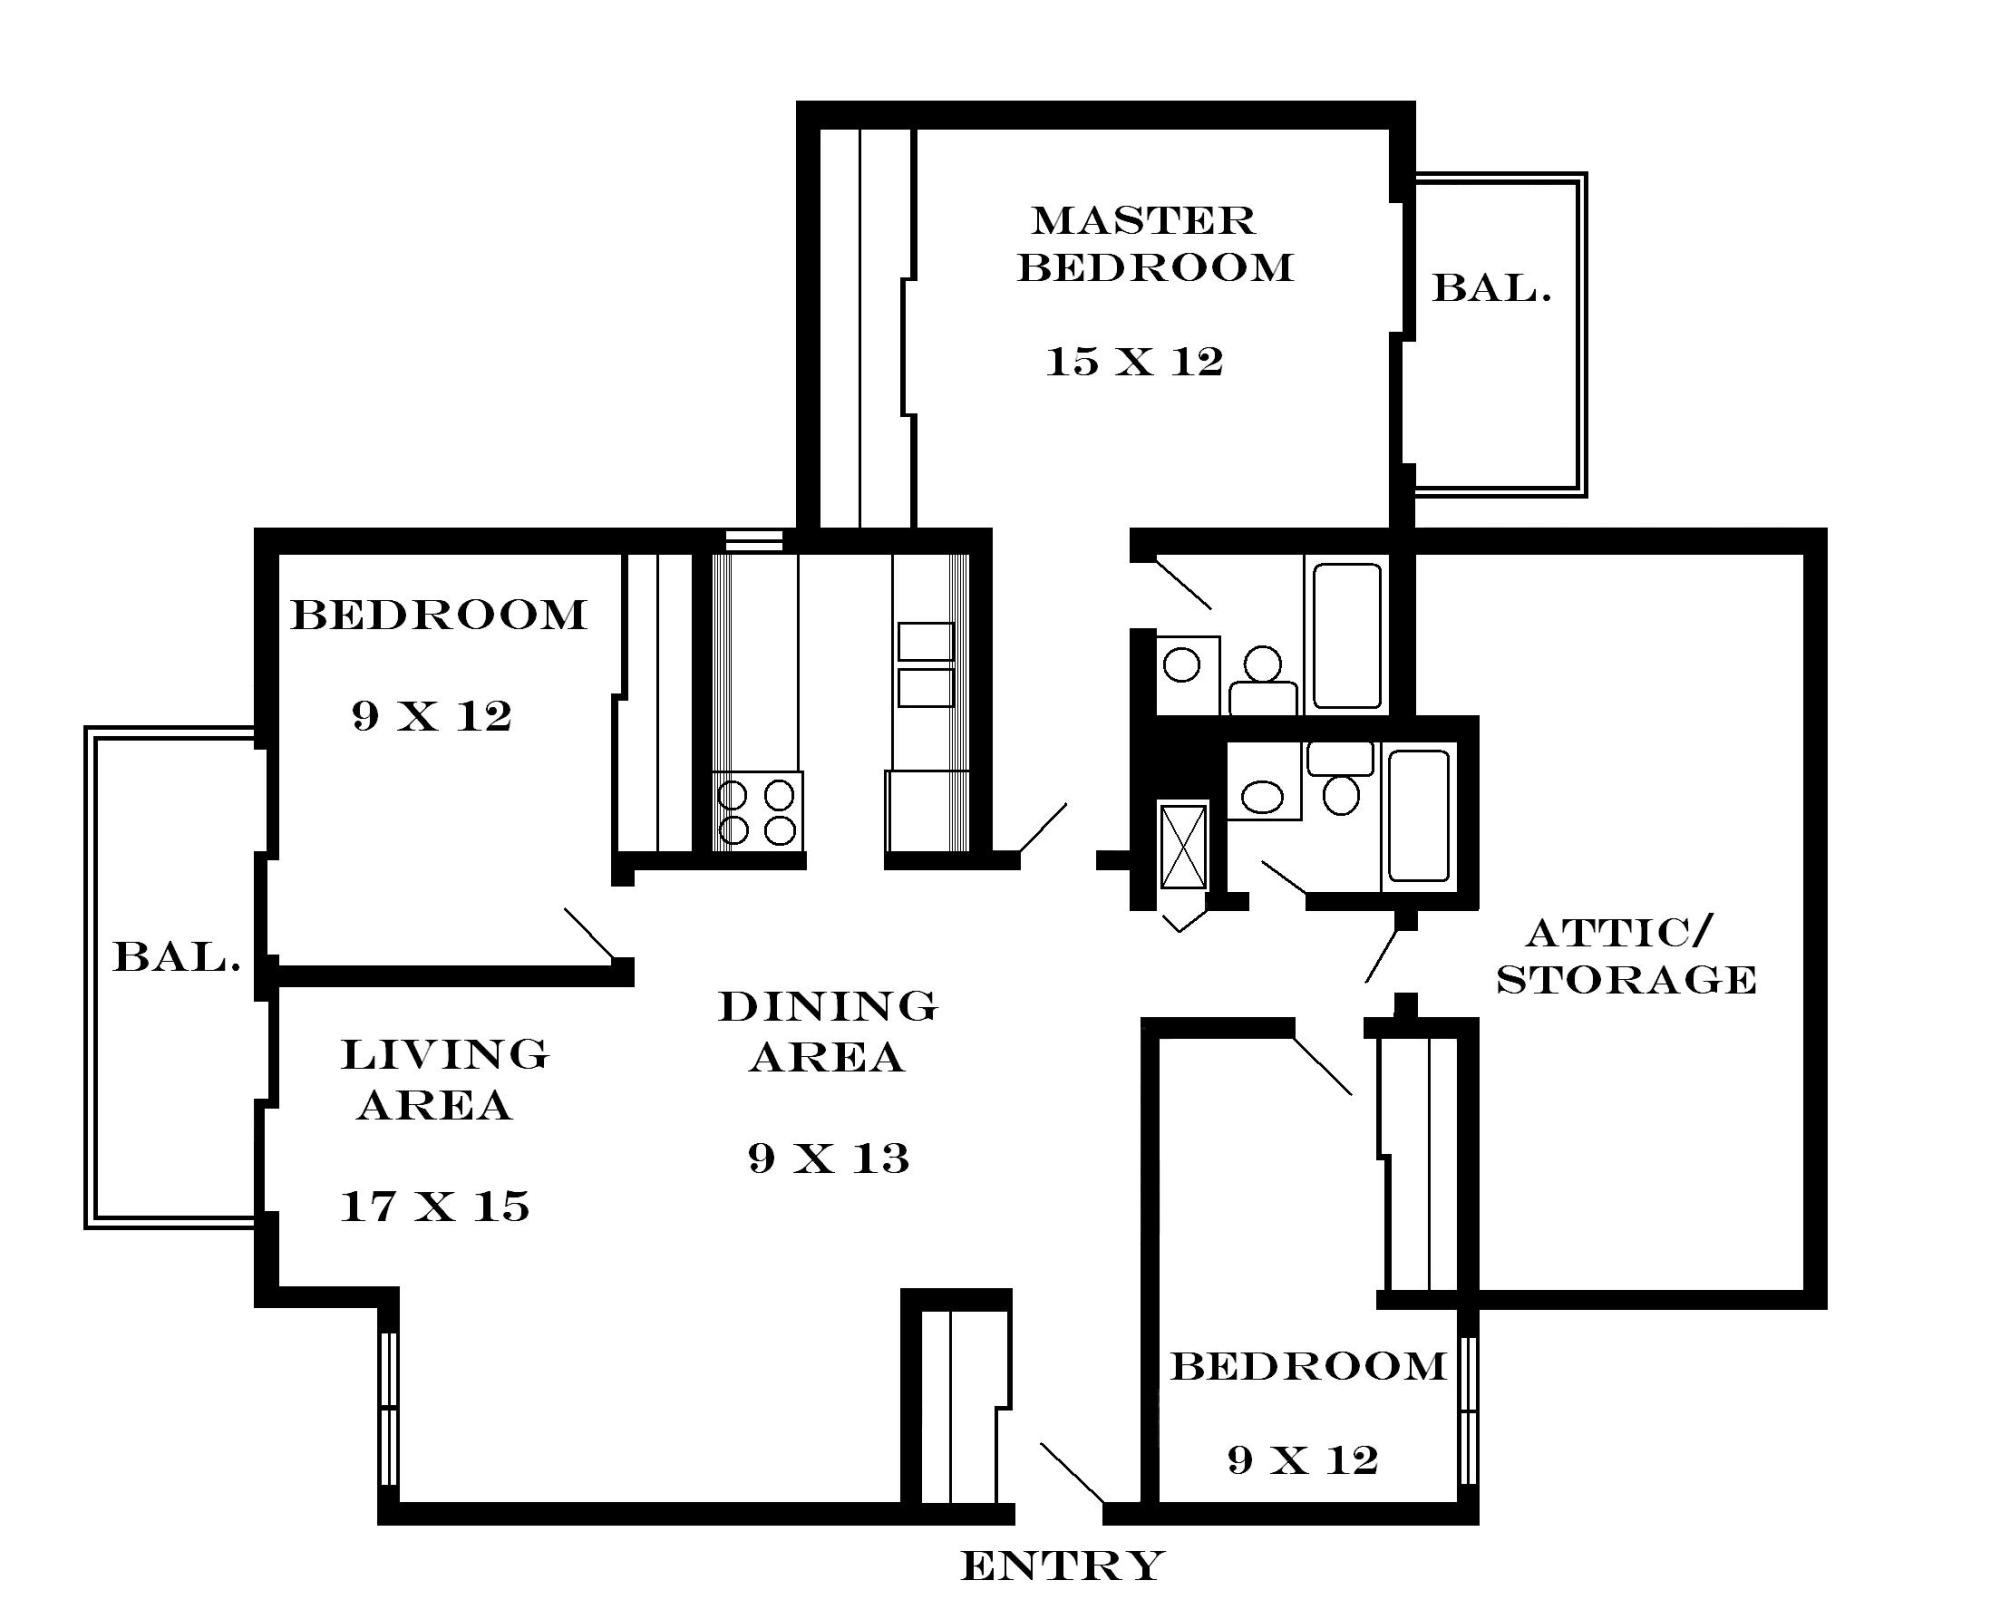 hight resolution of electrical wiring diagram 3 bedroom flat